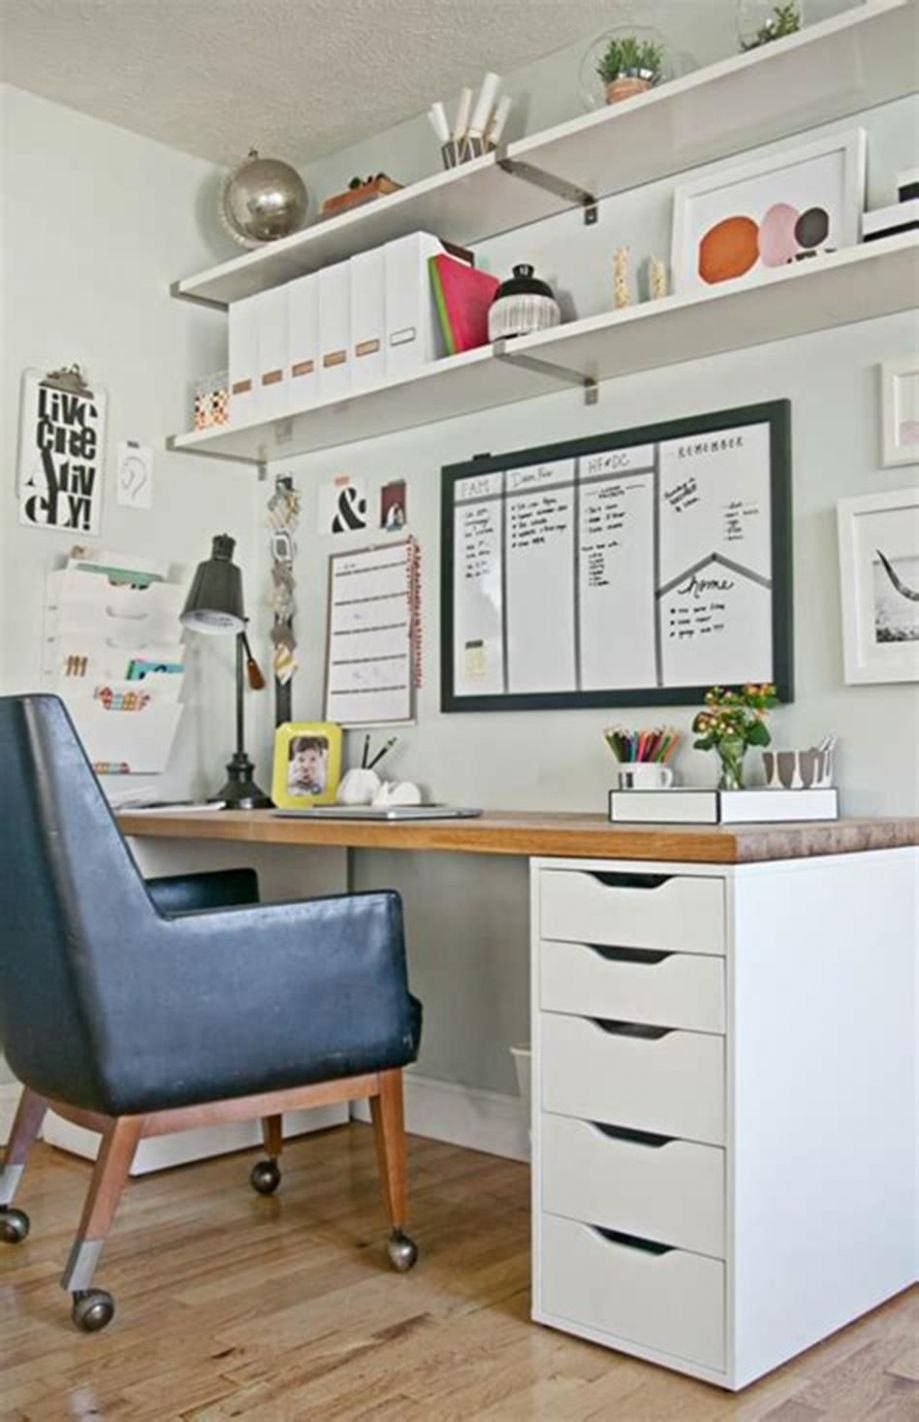 11 Best Small Space Office Decorating Ideas On a Budget 11 (With ...